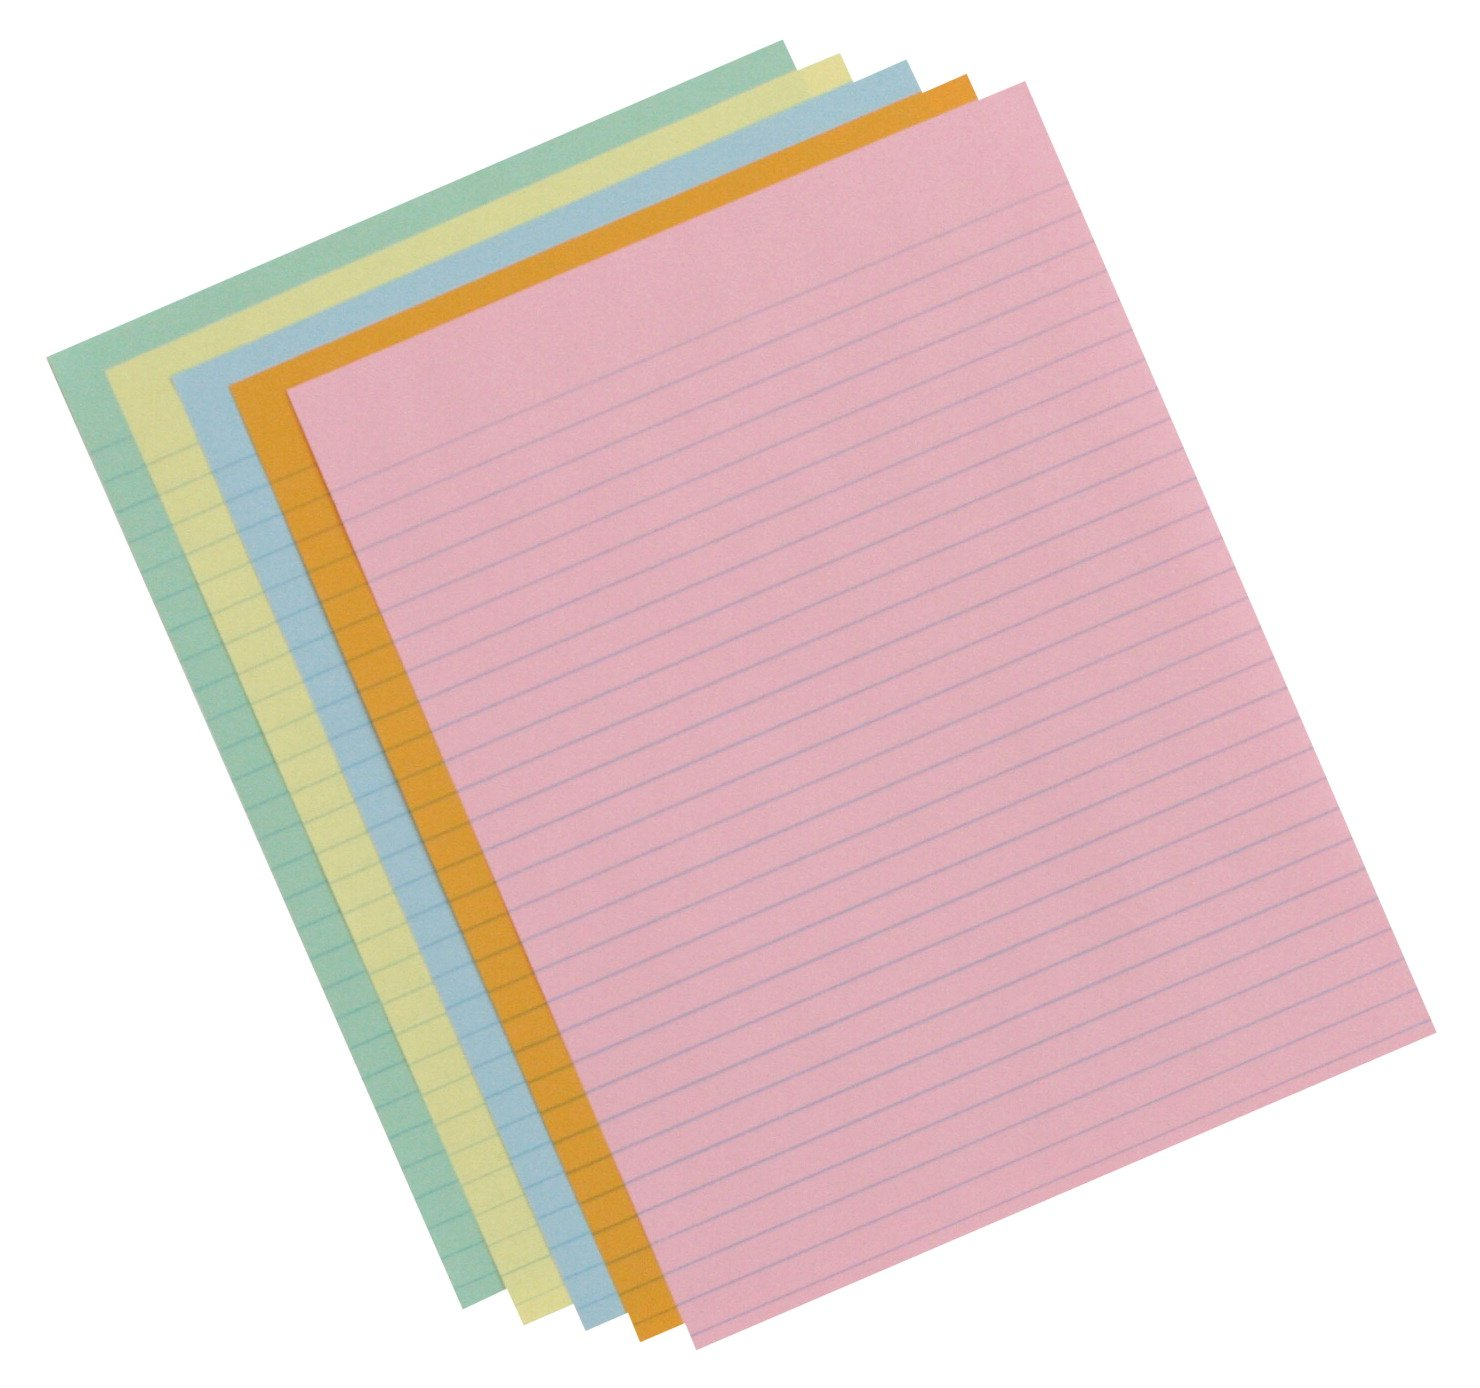 School Smart (085454) 20 lb 3/8 in Ruled Exhibit Paper Assortment - Ream of 500 - Assorted Colors